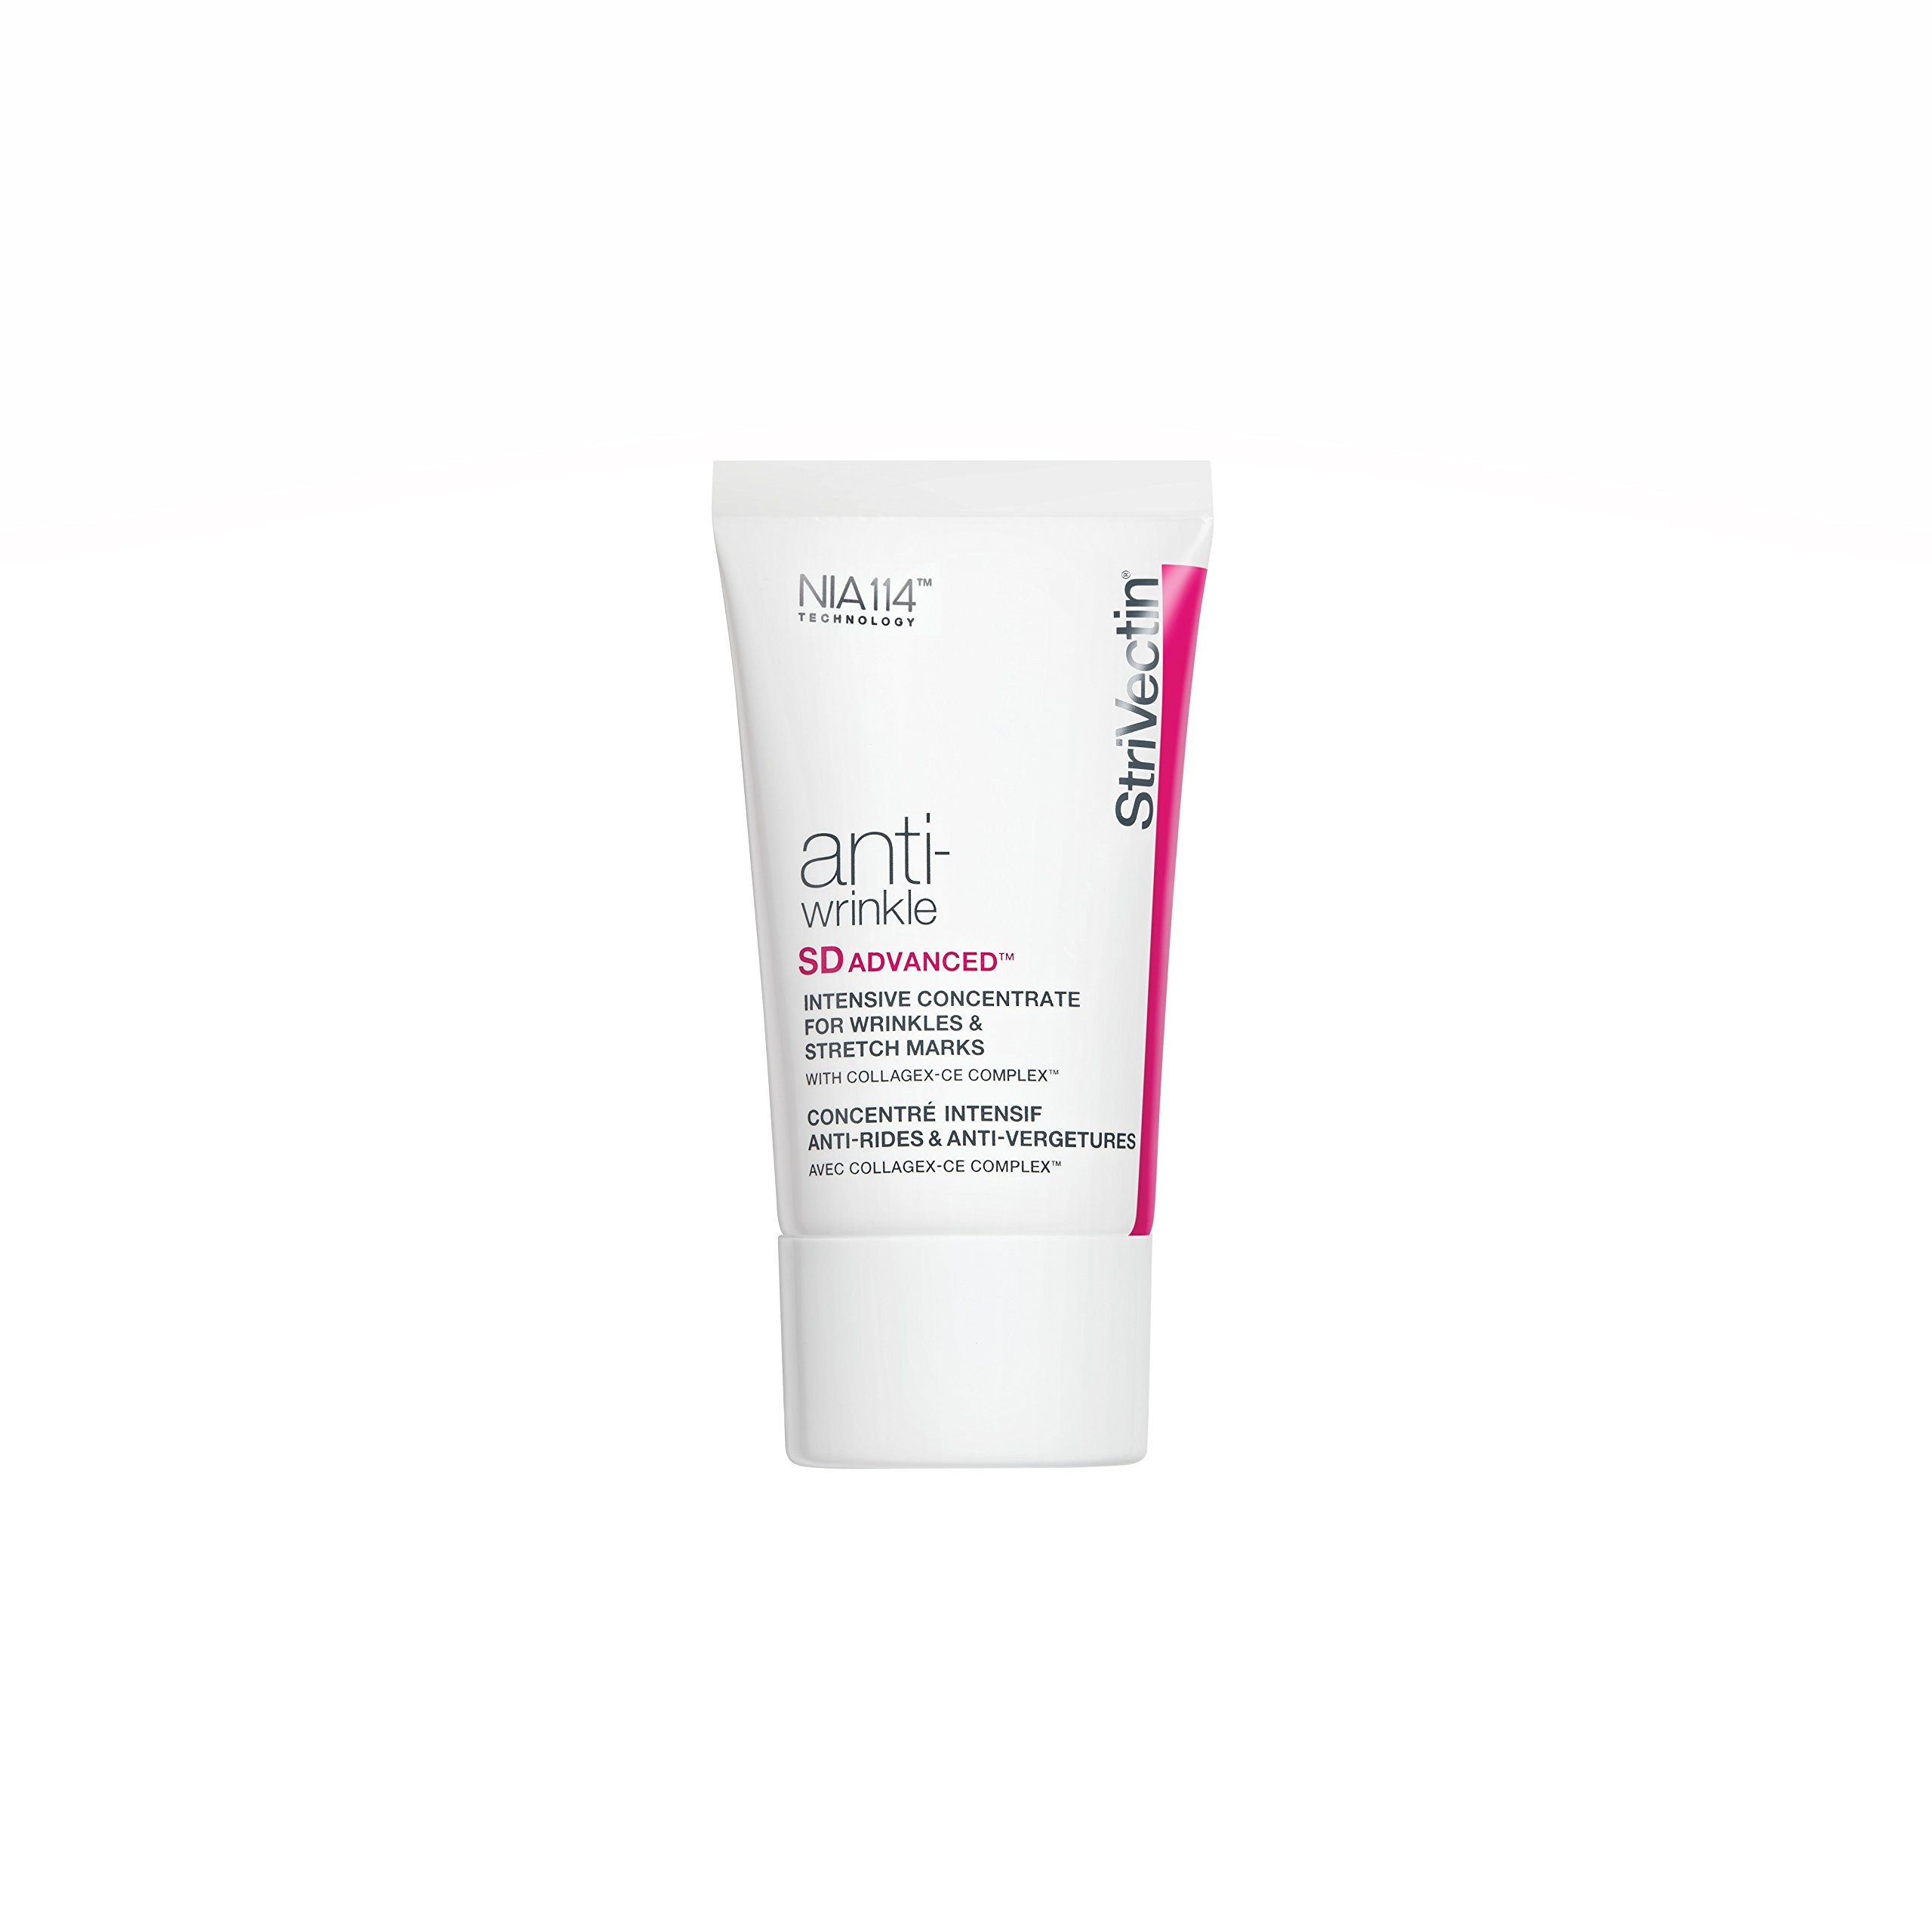 StriVectin SD Advanced Intensive Concentrate for Wrinkles and Stretch Marks